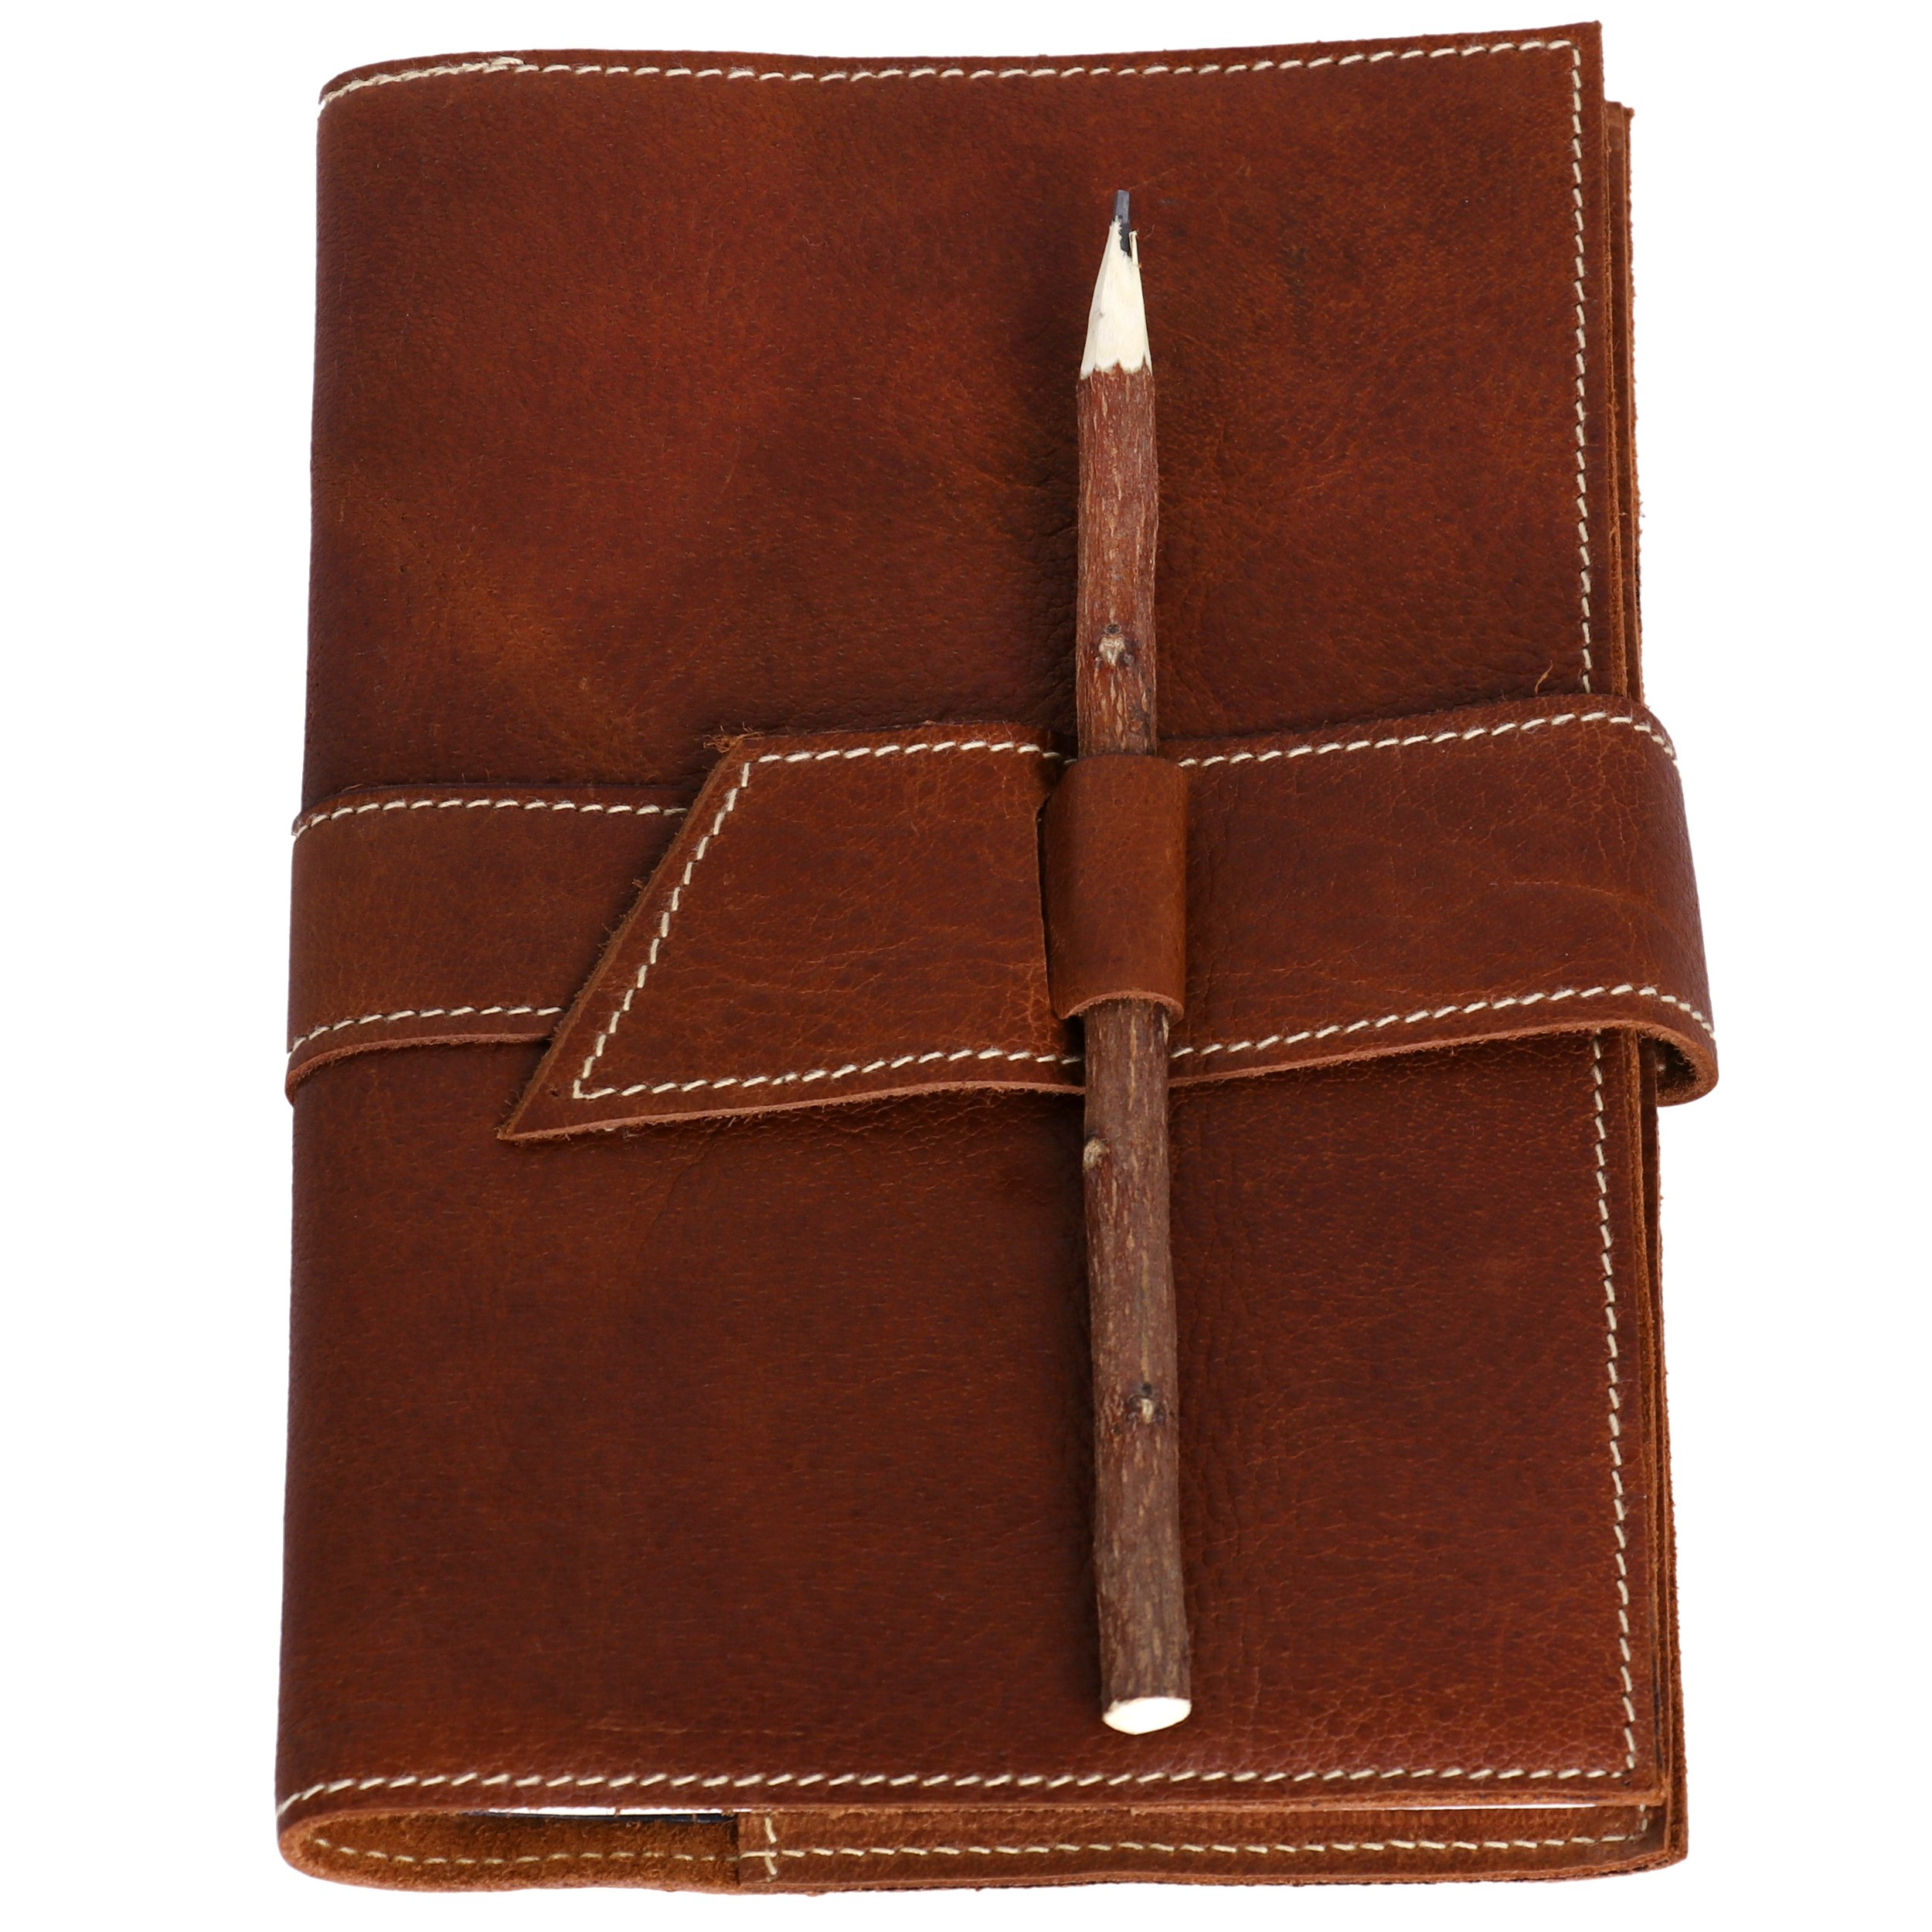 Leather Journal refillable Writing Notebook Full Grain Buffalo Leather Handmade Notepad Sketch Book with Handmade Paper & Wooden Pencil Size 6x9 inches Gift for Artists Men and Women by KomalC (6x9)